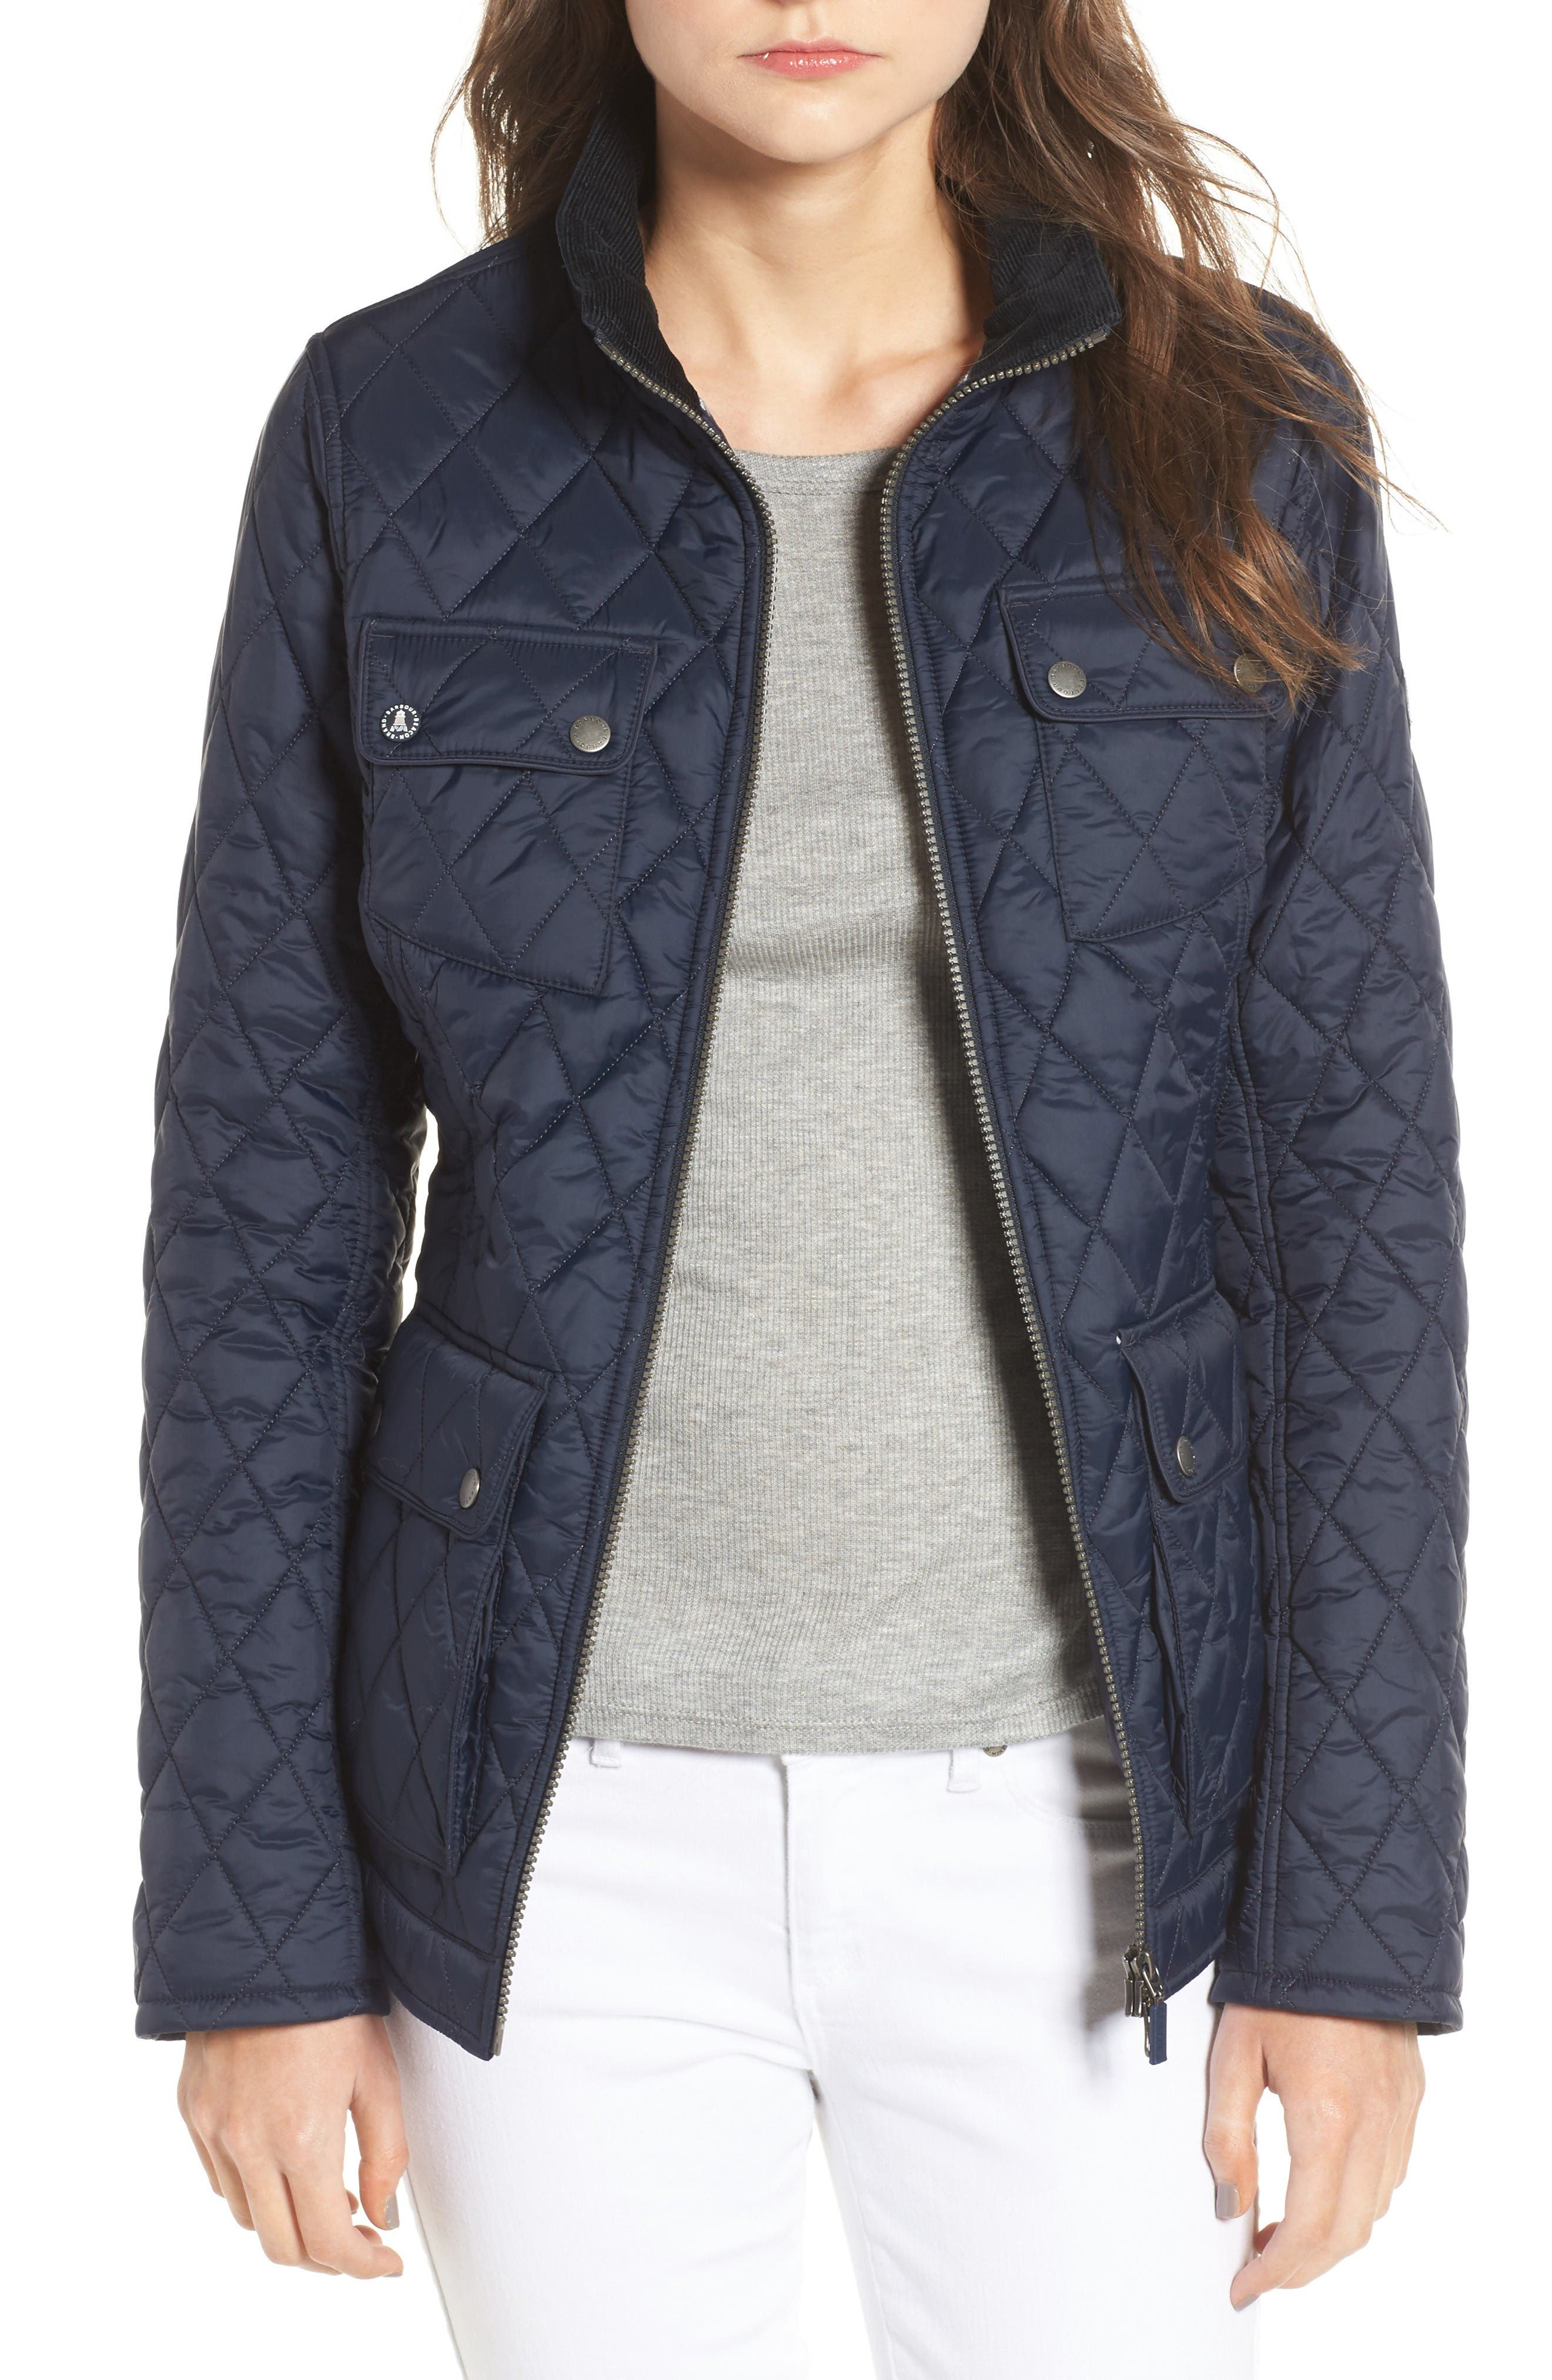 Dolostone Quilted Jacket,                             Main thumbnail 1, color,                             Dark Navy